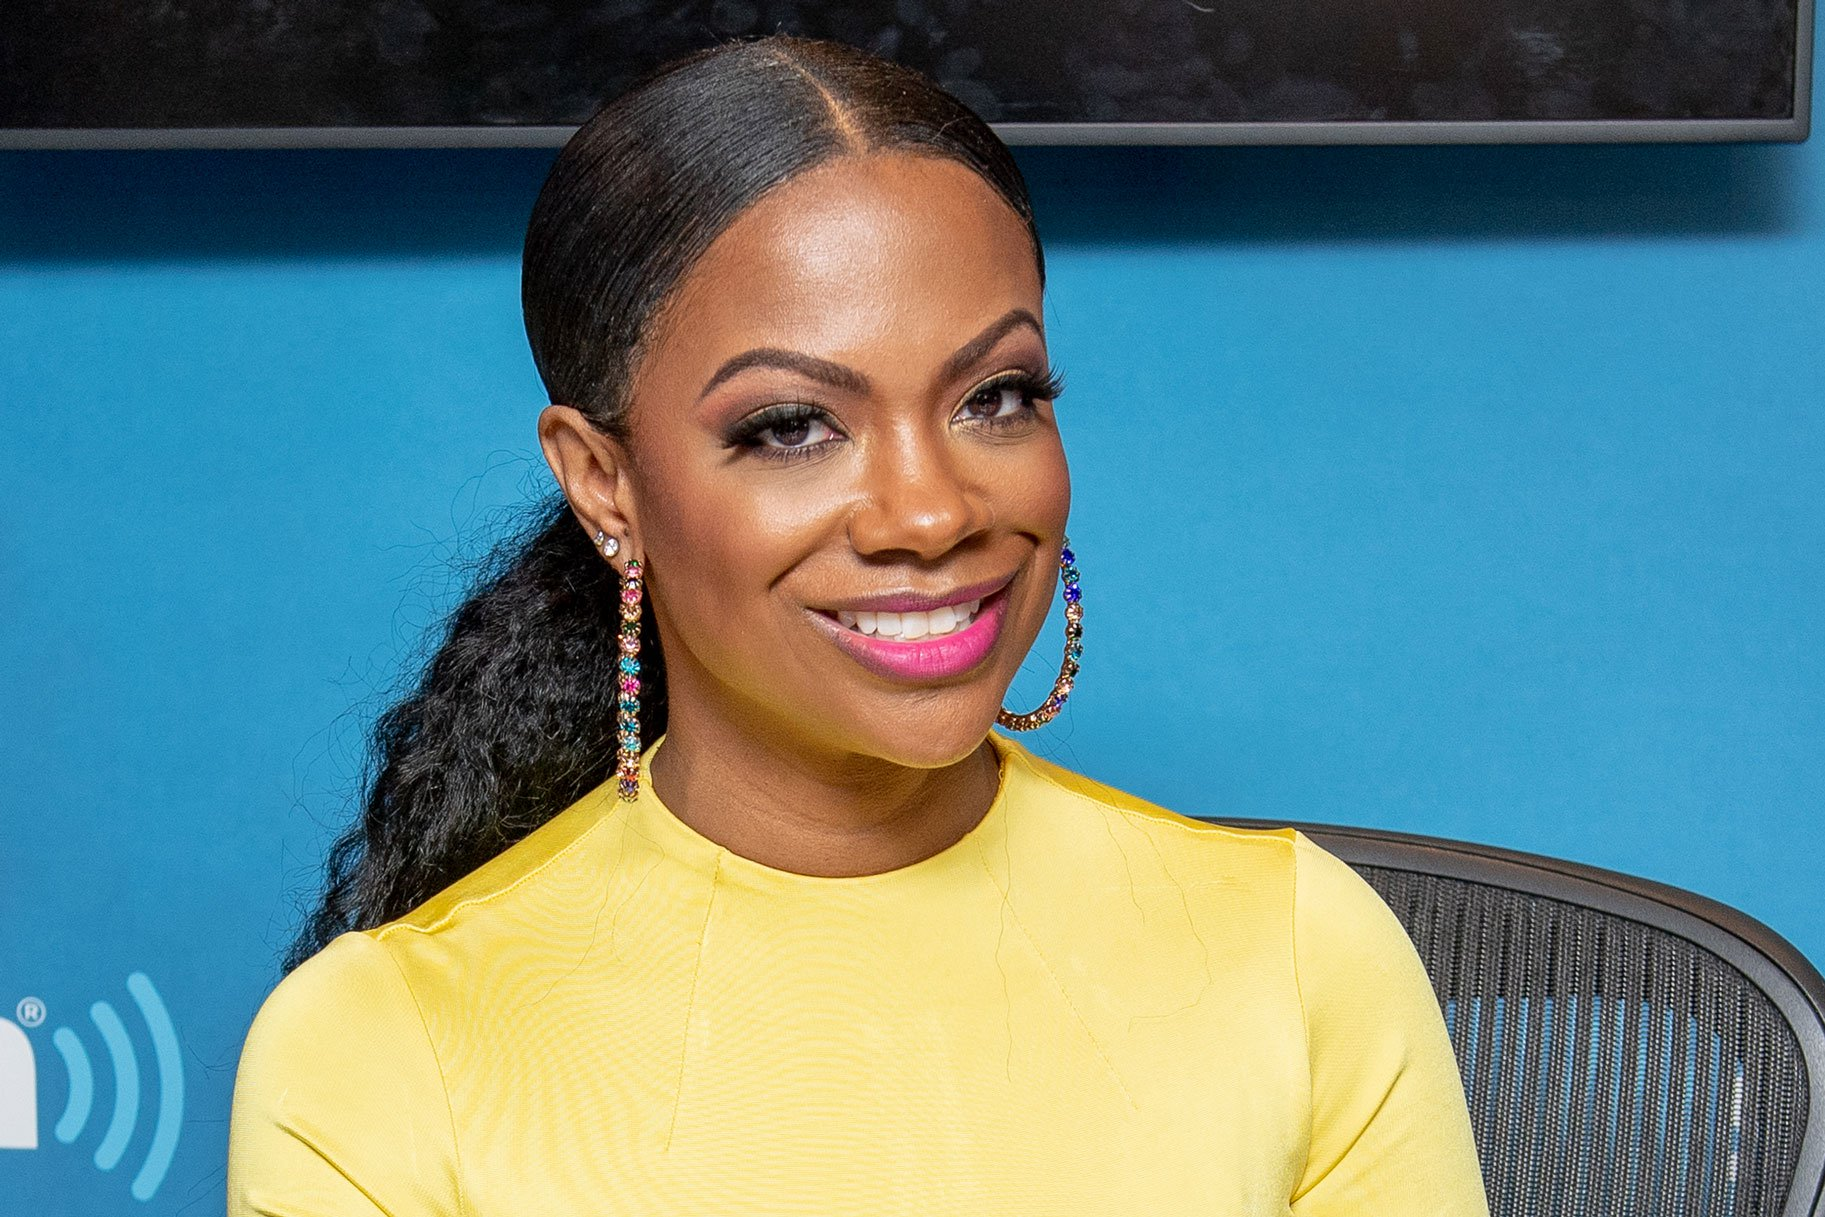 """kandi-burruss-advertises-a-weight-loss-product-and-tells-her-fans-that-shes-not-playing-with-fake-diets"""